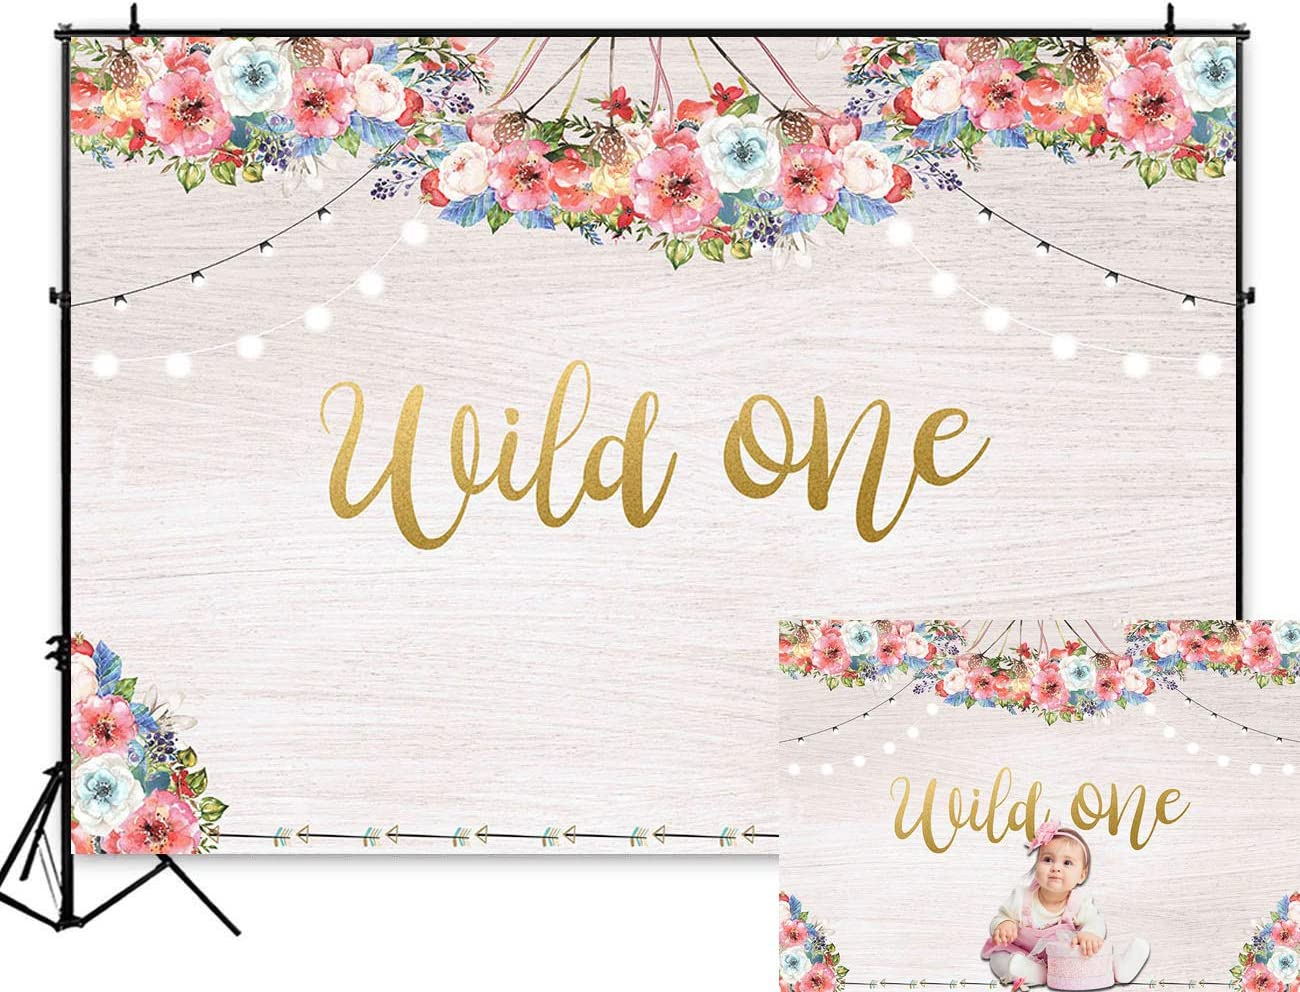 Art Studio 5x3ft Boho Theme Floral Backdrop Wild One Girl Princess 1st Birthday Party Decoration Photo Background Bohemian Trible Wooden Wall Baby Shower PhotoBooth Banner Studio Props Vinyl